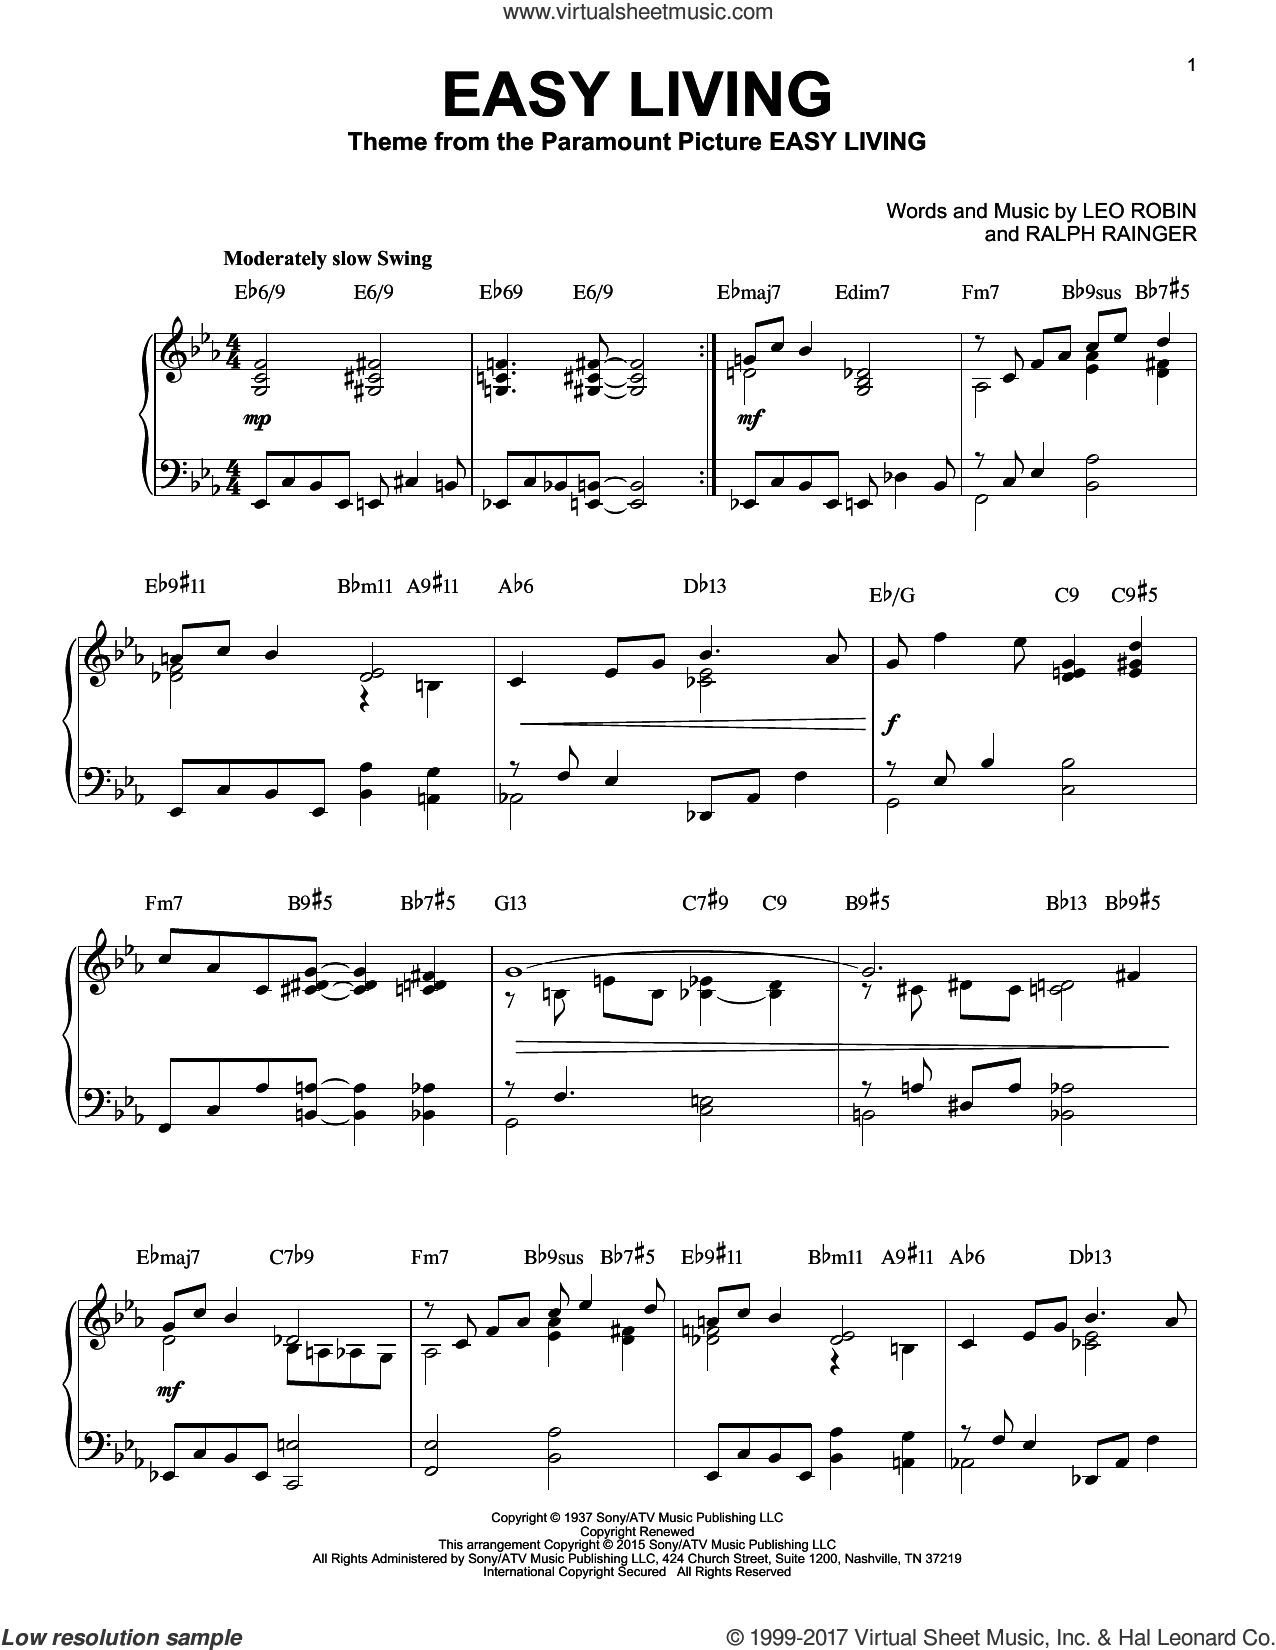 Easy Living [Jazz version] (arr. Brent Edstrom) sheet music for piano solo by Billie Holiday, Leo Robin and Ralph Rainger, intermediate skill level